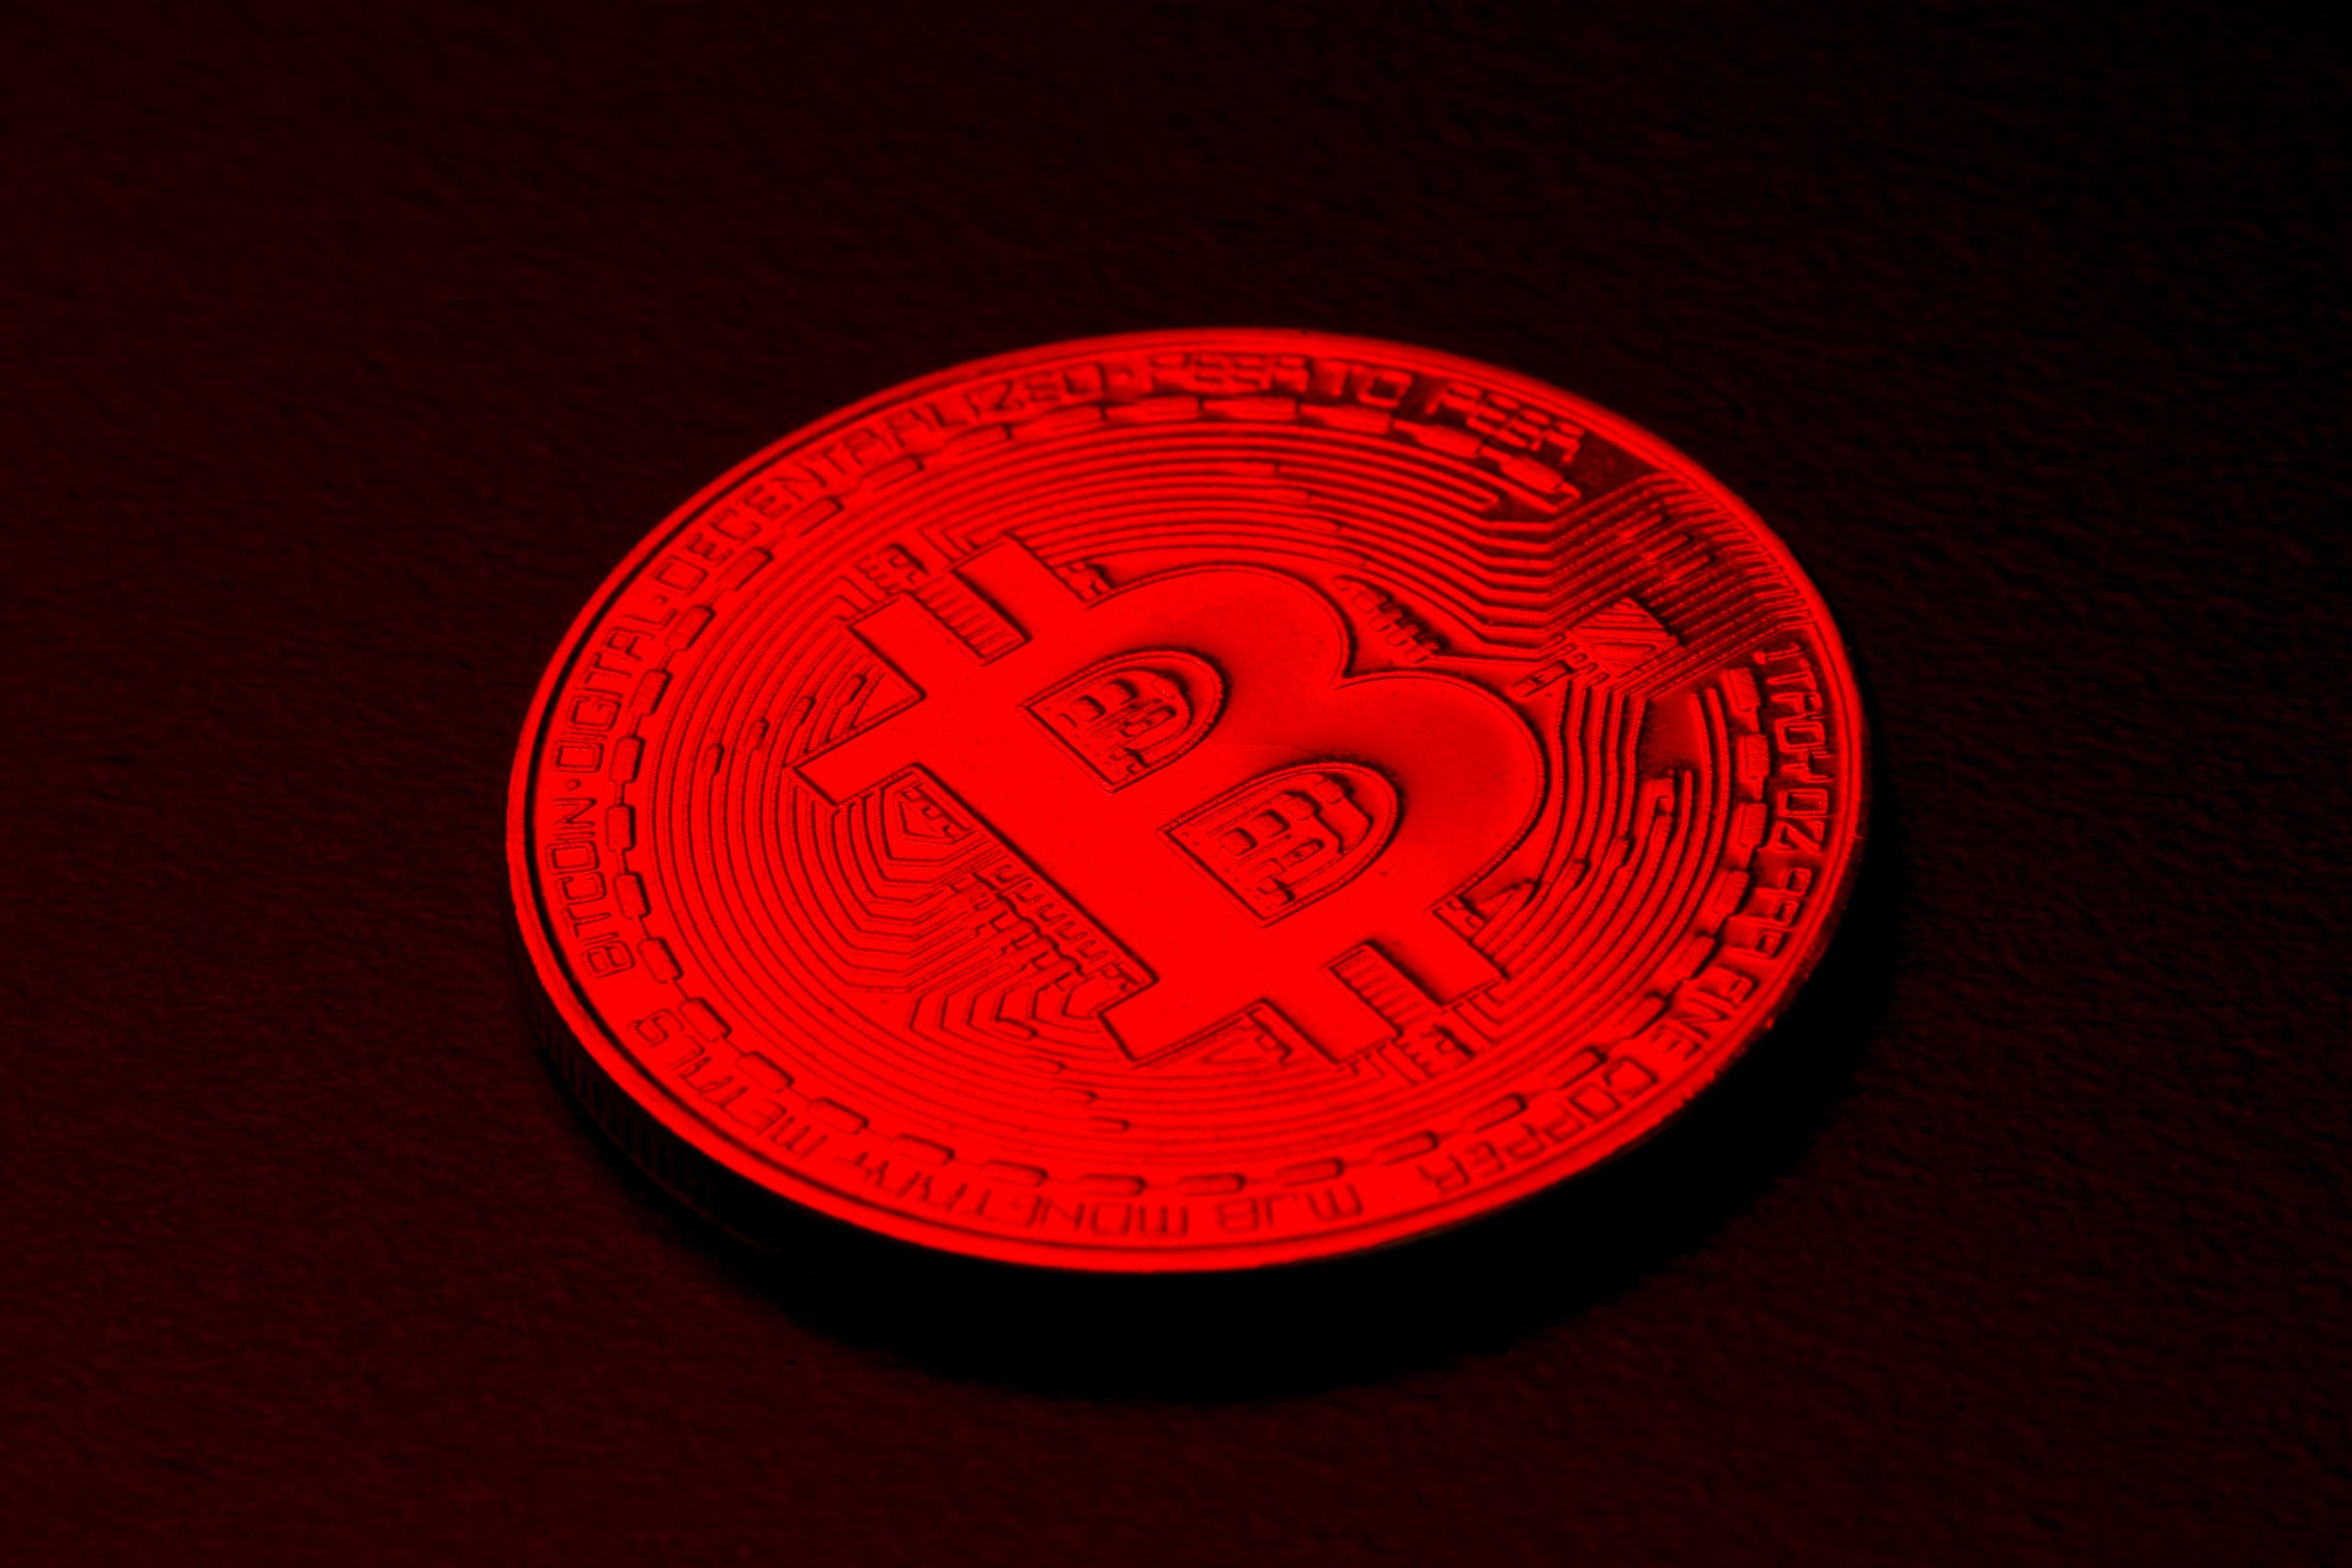 Bitcoin resumes sell-off over weekend, falls below $32,000